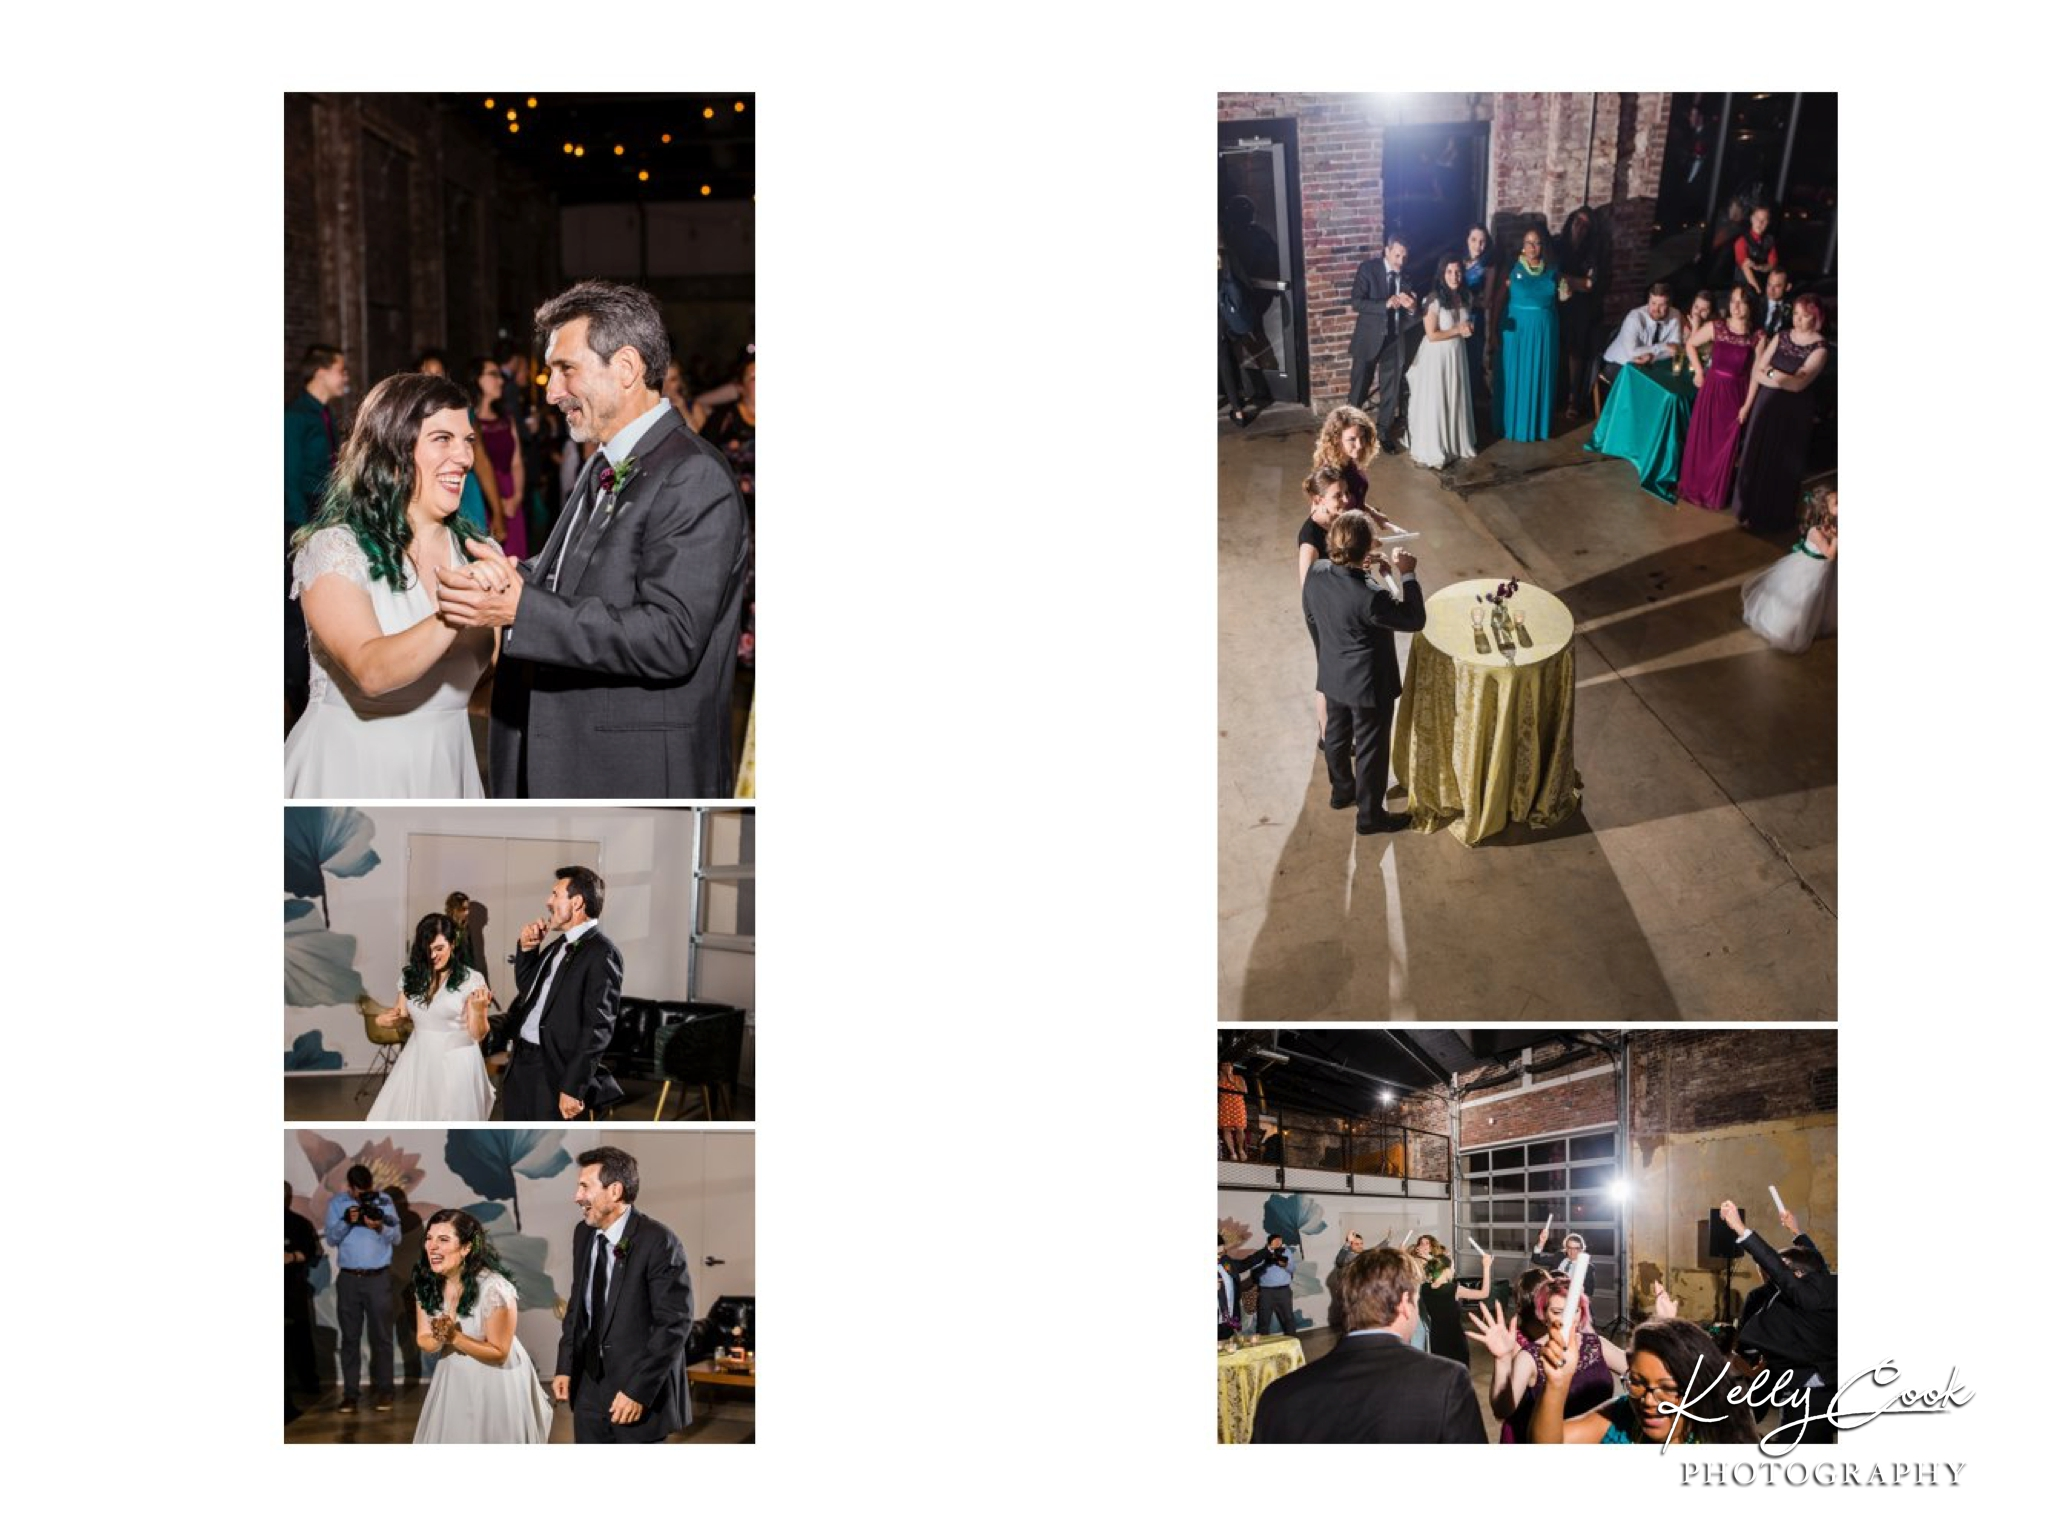 Candid dancing photos from a Wild Carrot wedding in St. Louis